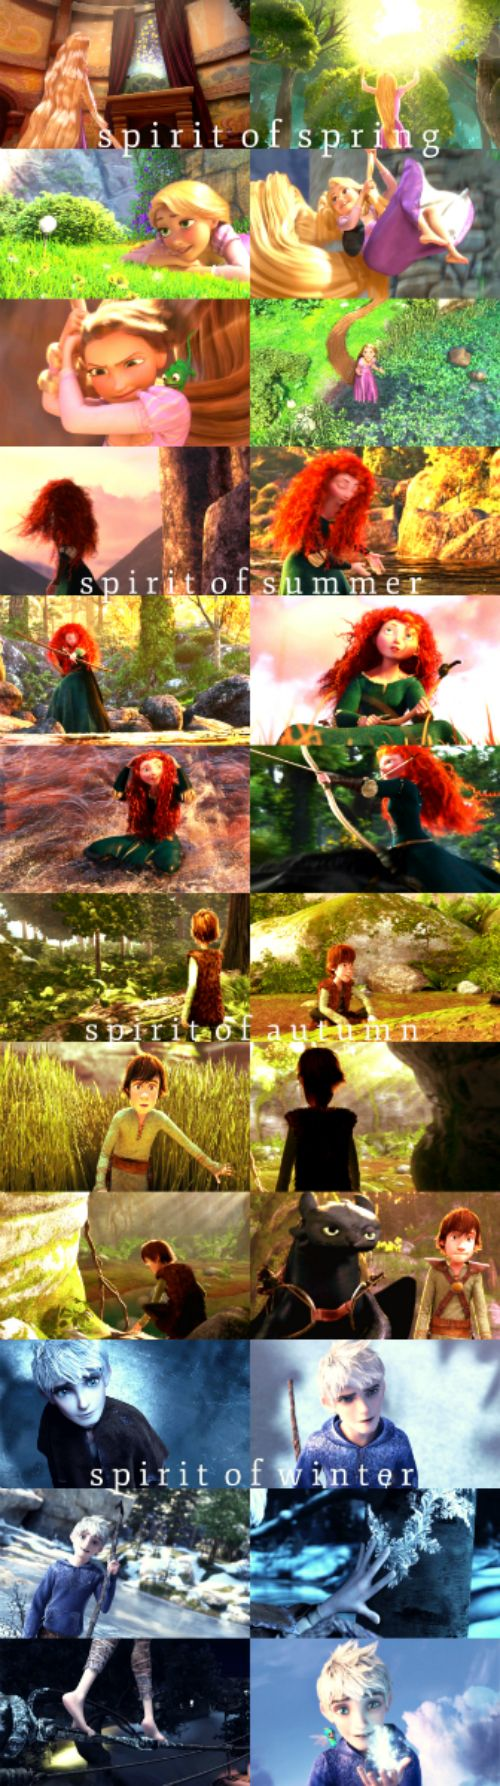 rise+of+the+brave+tangled+dragons | rise of the brave tangled dragons seasons au by sonnytots digital art ...